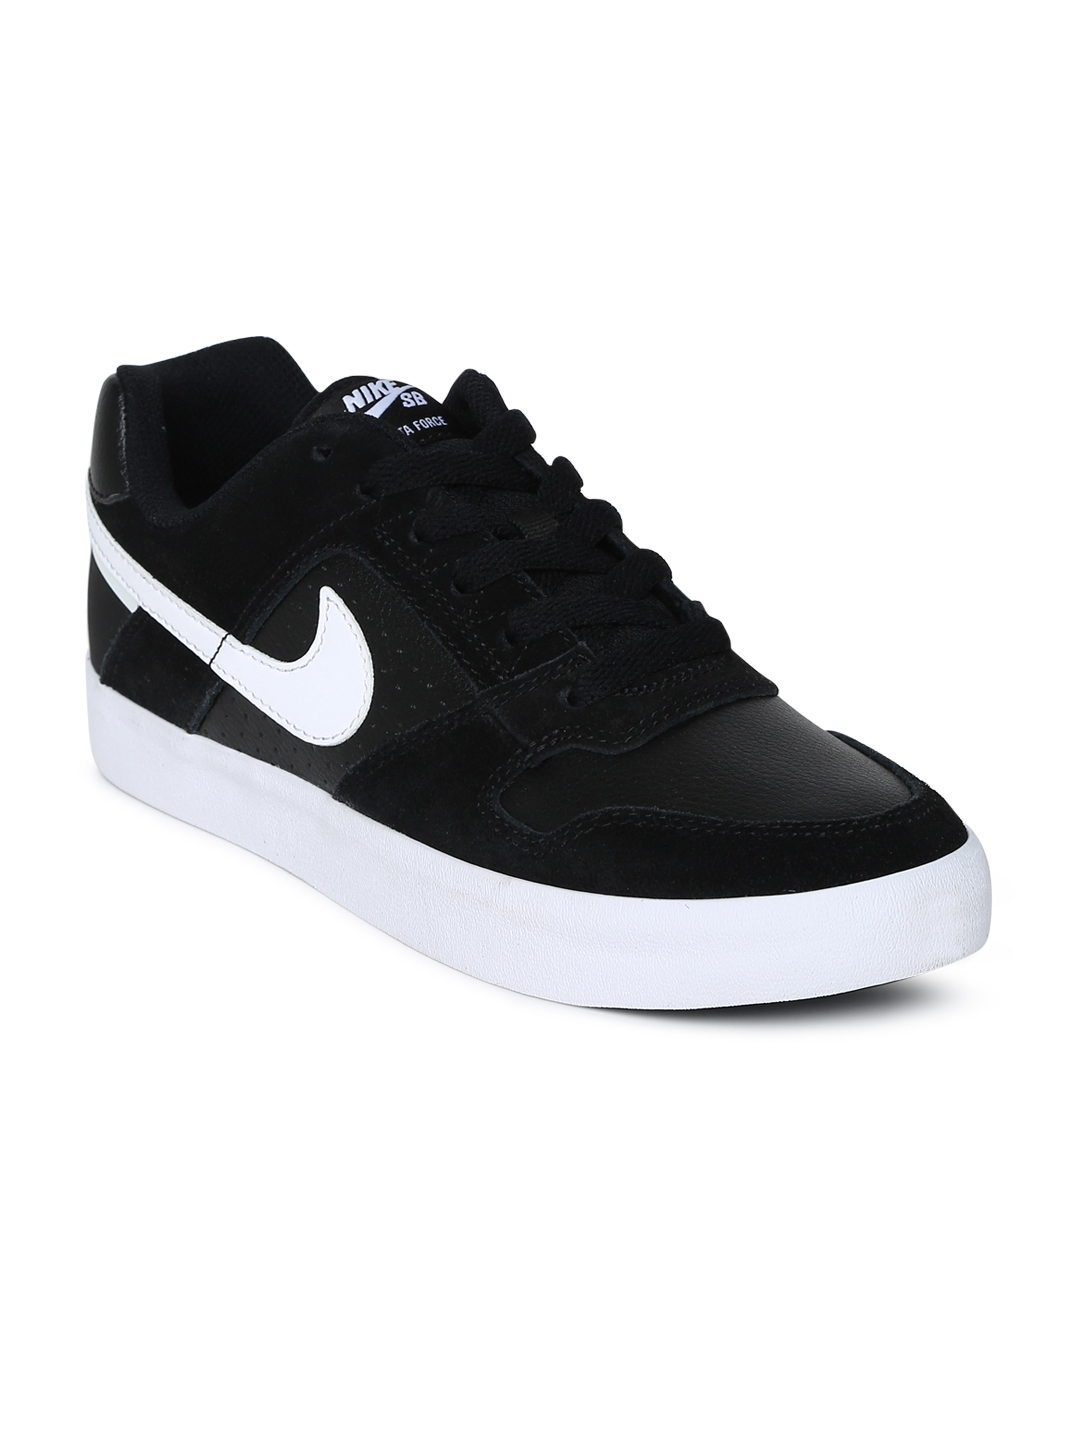 62cd648b6cd Buy Nike Men Black SB DELTA FORCE VULC Skateboarding Shoe - Sports ...